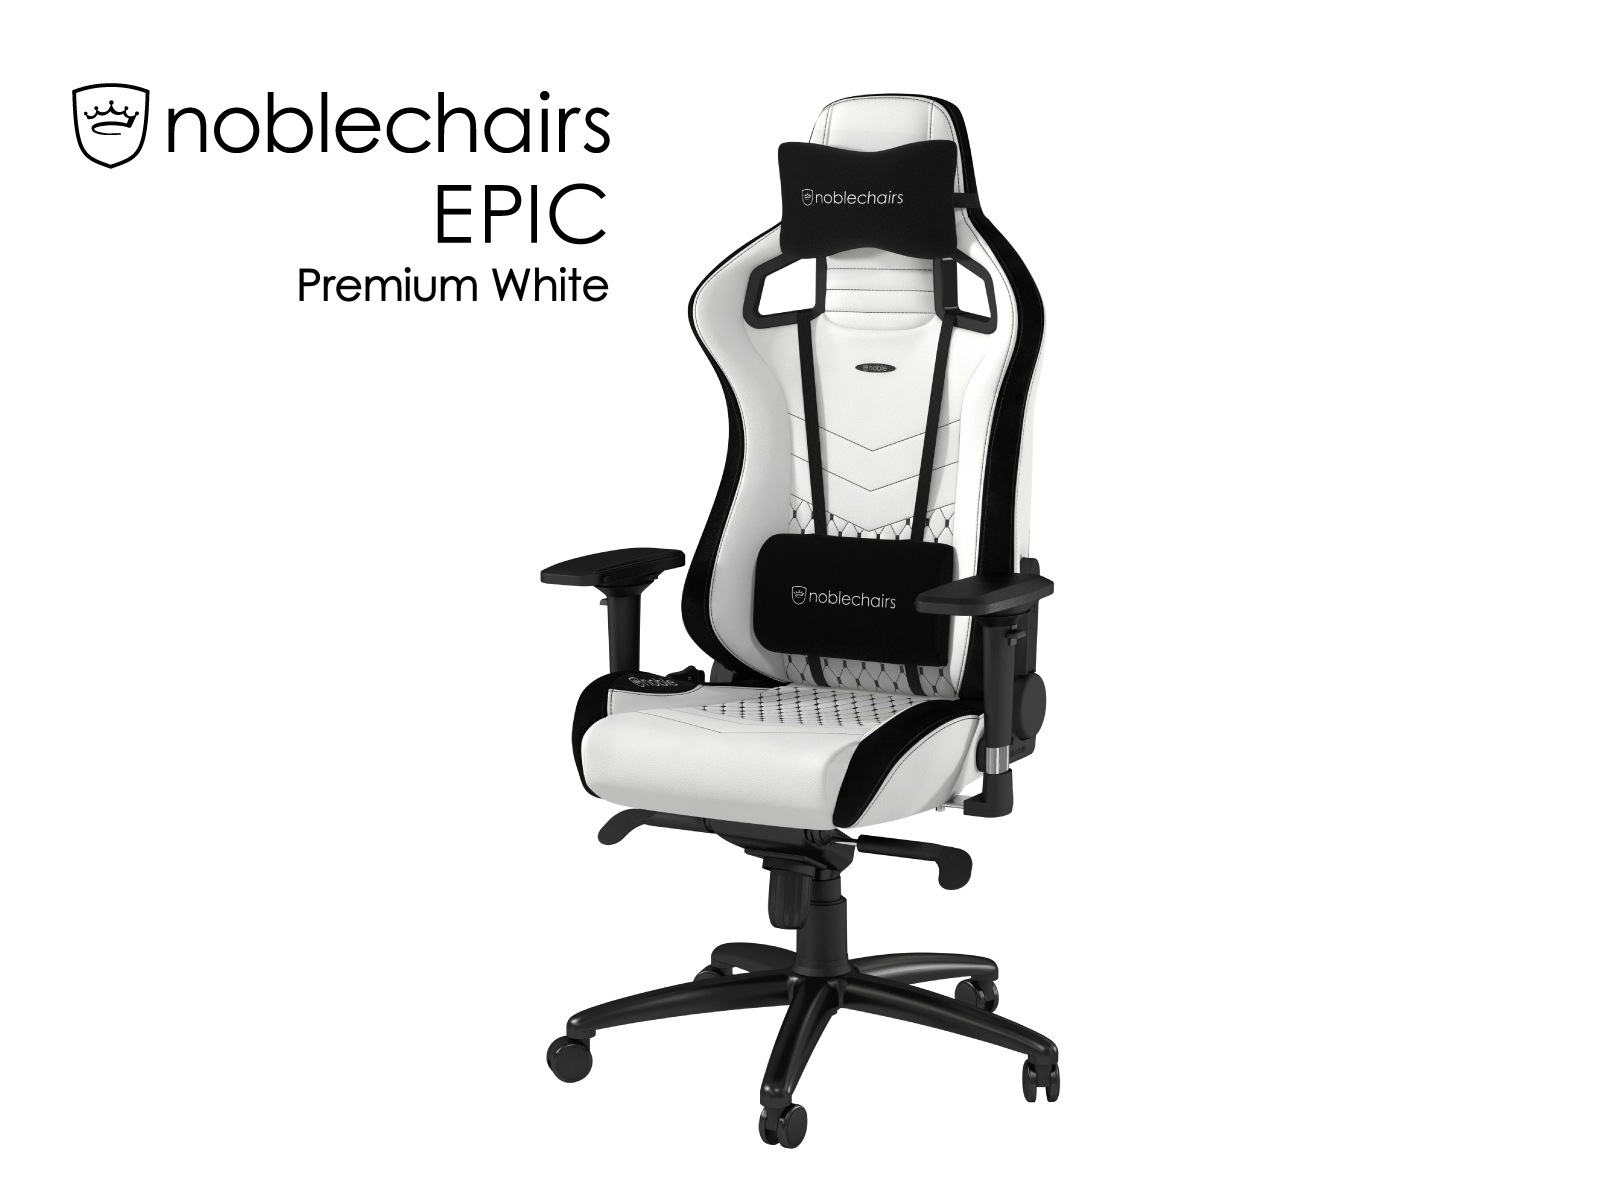 noblechairs EPIC プレミアムホワイト